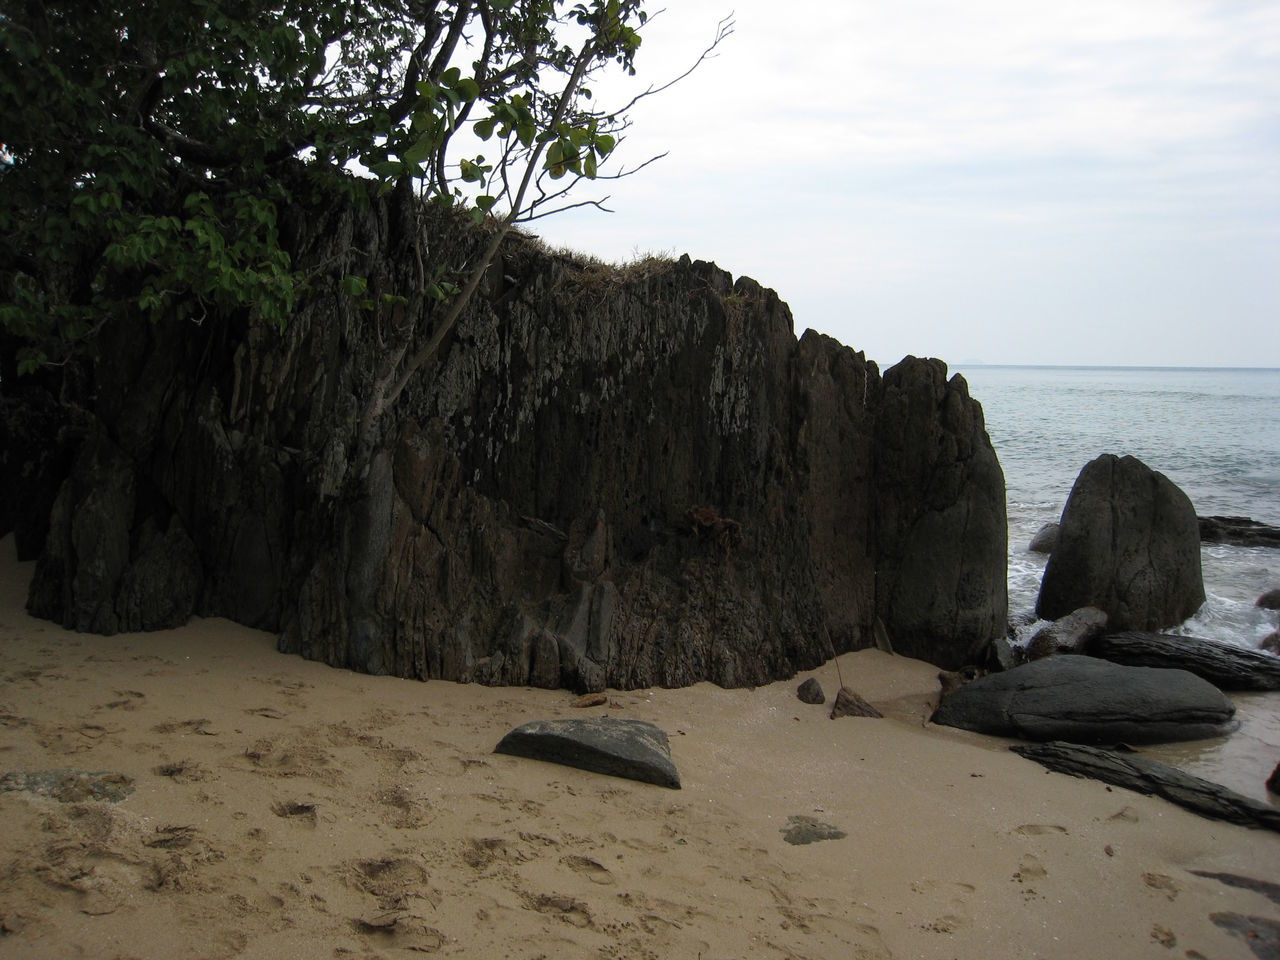 sea, rock - object, nature, beach, sand, rock formation, horizon over water, beauty in nature, water, sky, scenics, tranquility, tranquil scene, no people, outdoors, day, tree